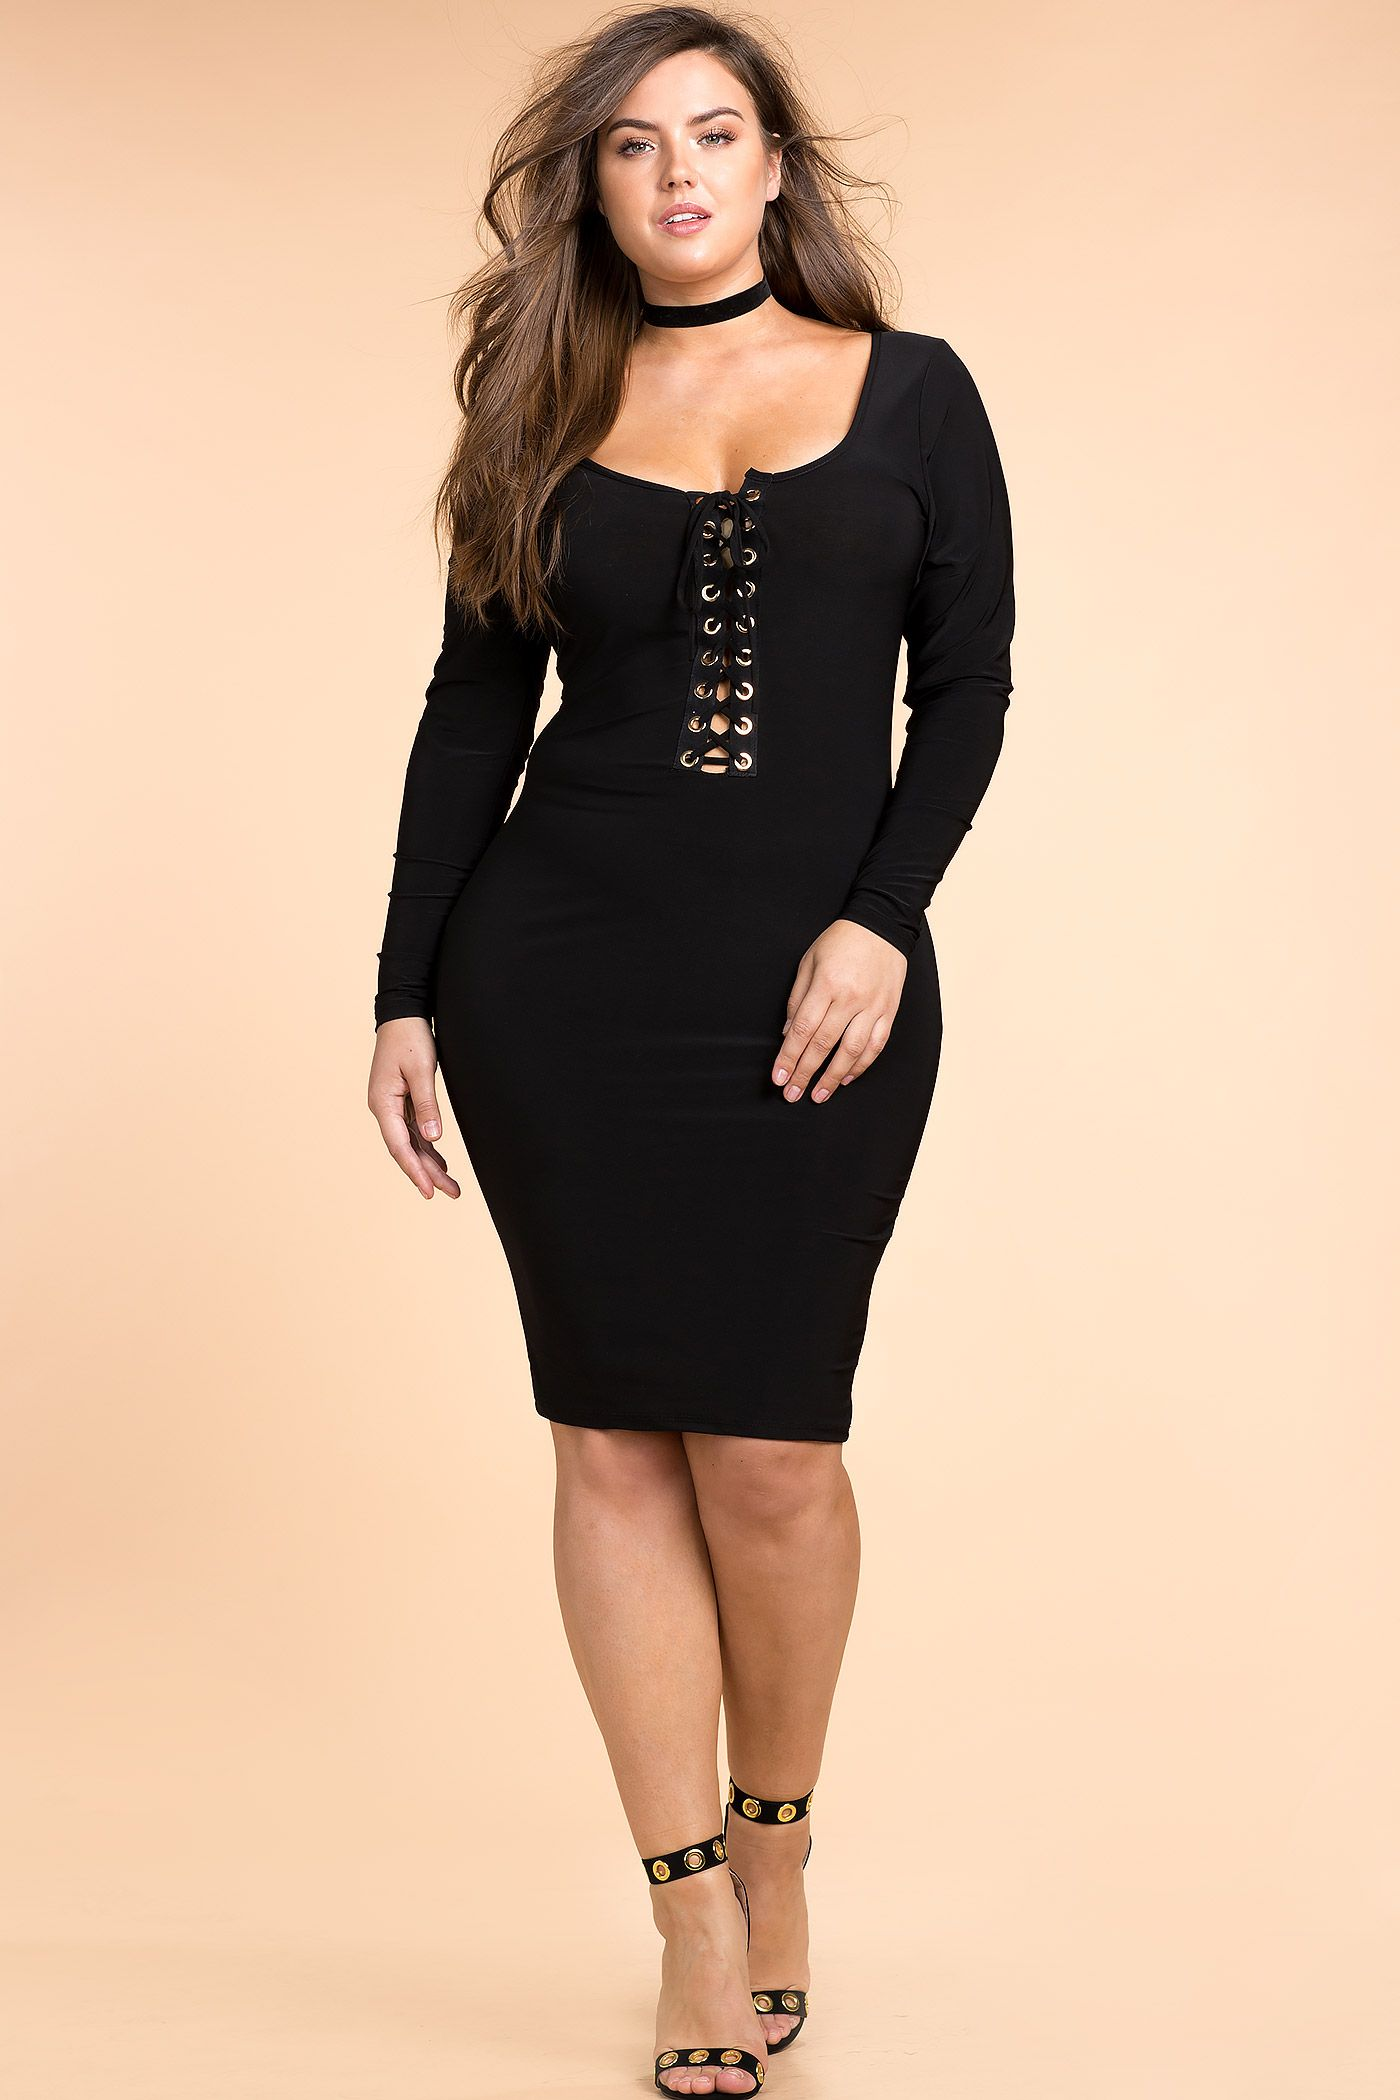 7f19d8106d Women's Plus Size Bodycon Dresses | Plunge Lace Up Bodycon Dress | A'GACI